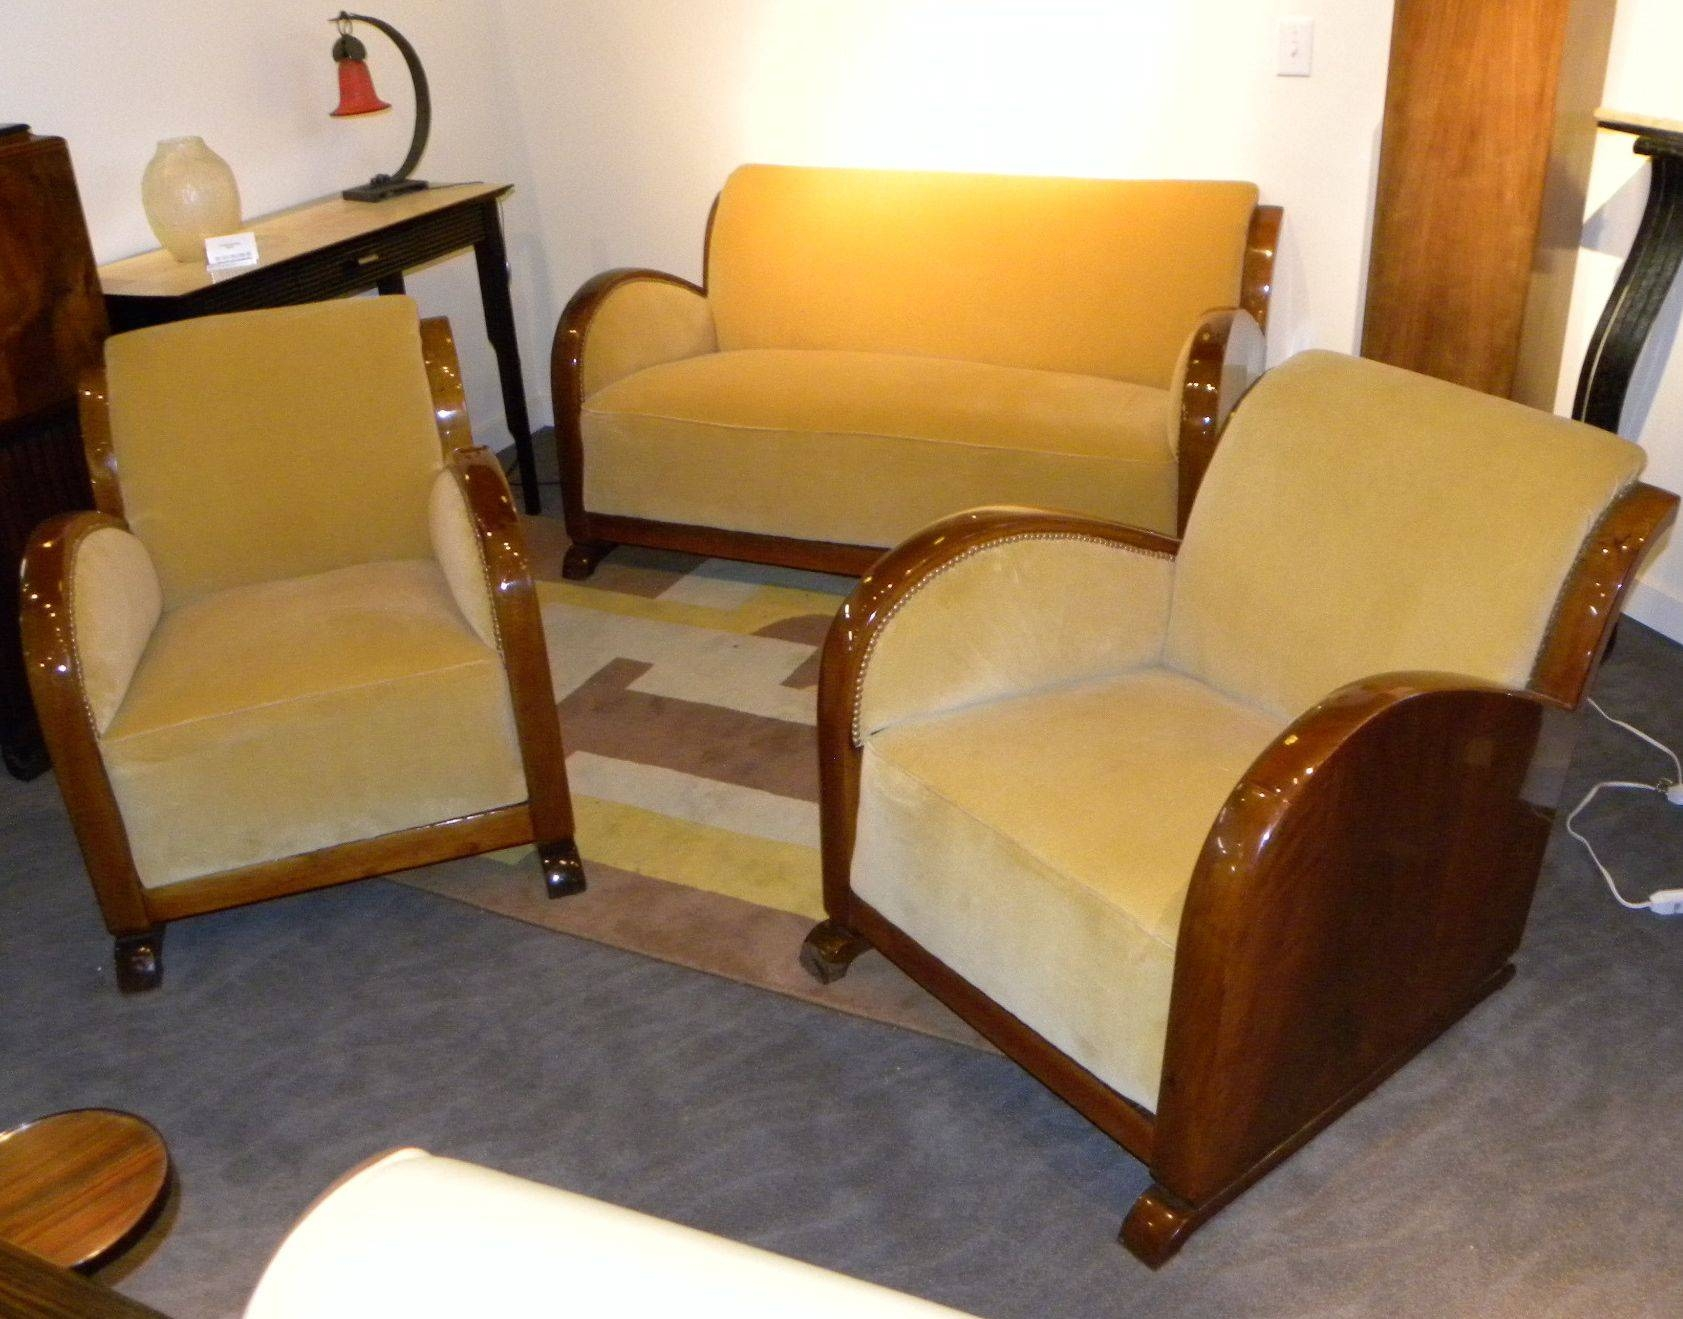 Art Deco Sofa And Chairs | Sofas Decoration regarding Art Deco Sofa And Chairs (Image 6 of 15)